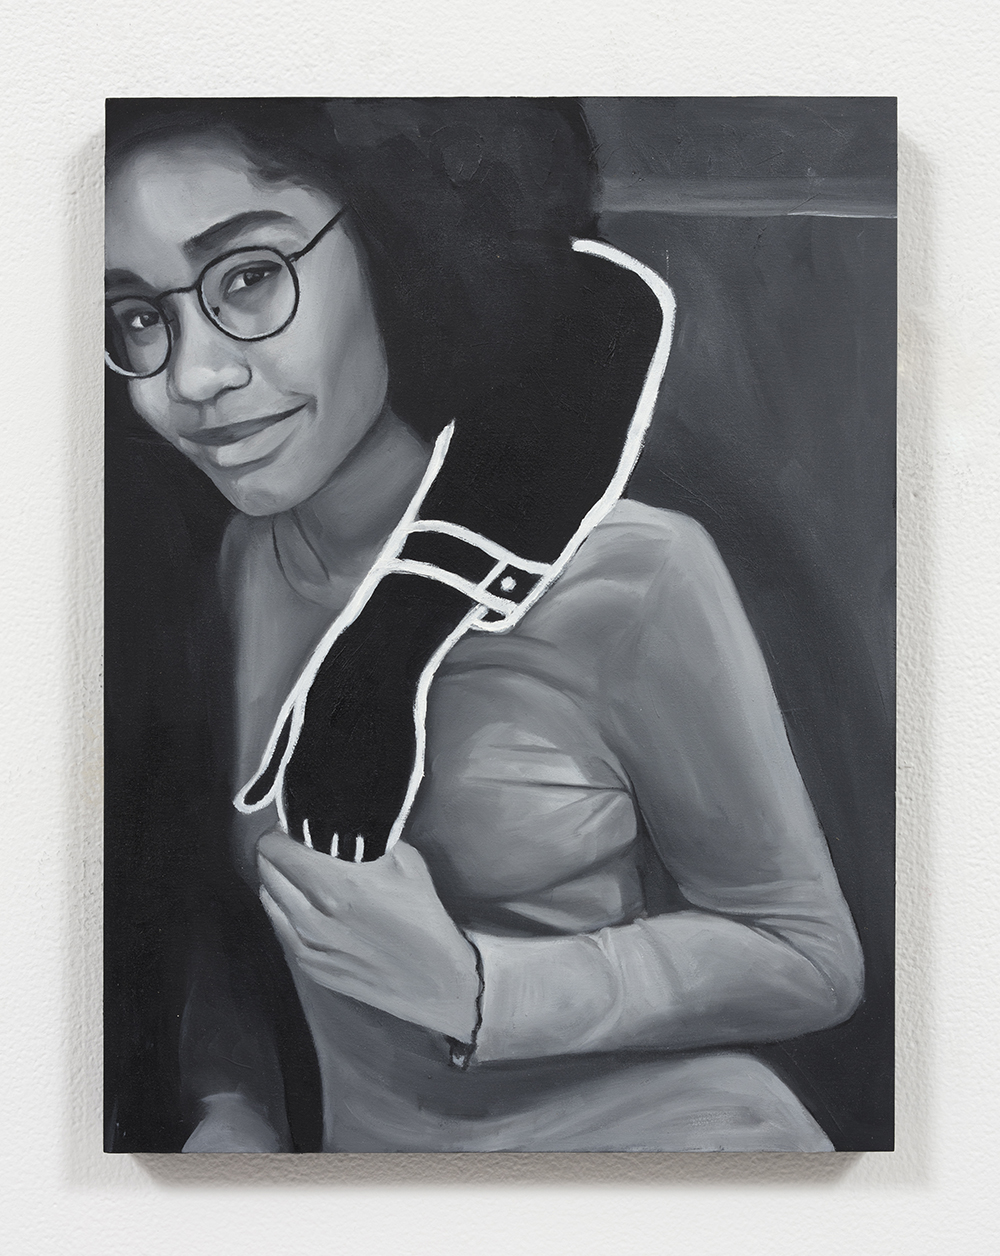 Brittany Tucker.<em> Ouch!</em>, 2019. Oil on panel, 12 x 9 inches  (30.5 x 22.9 cm)